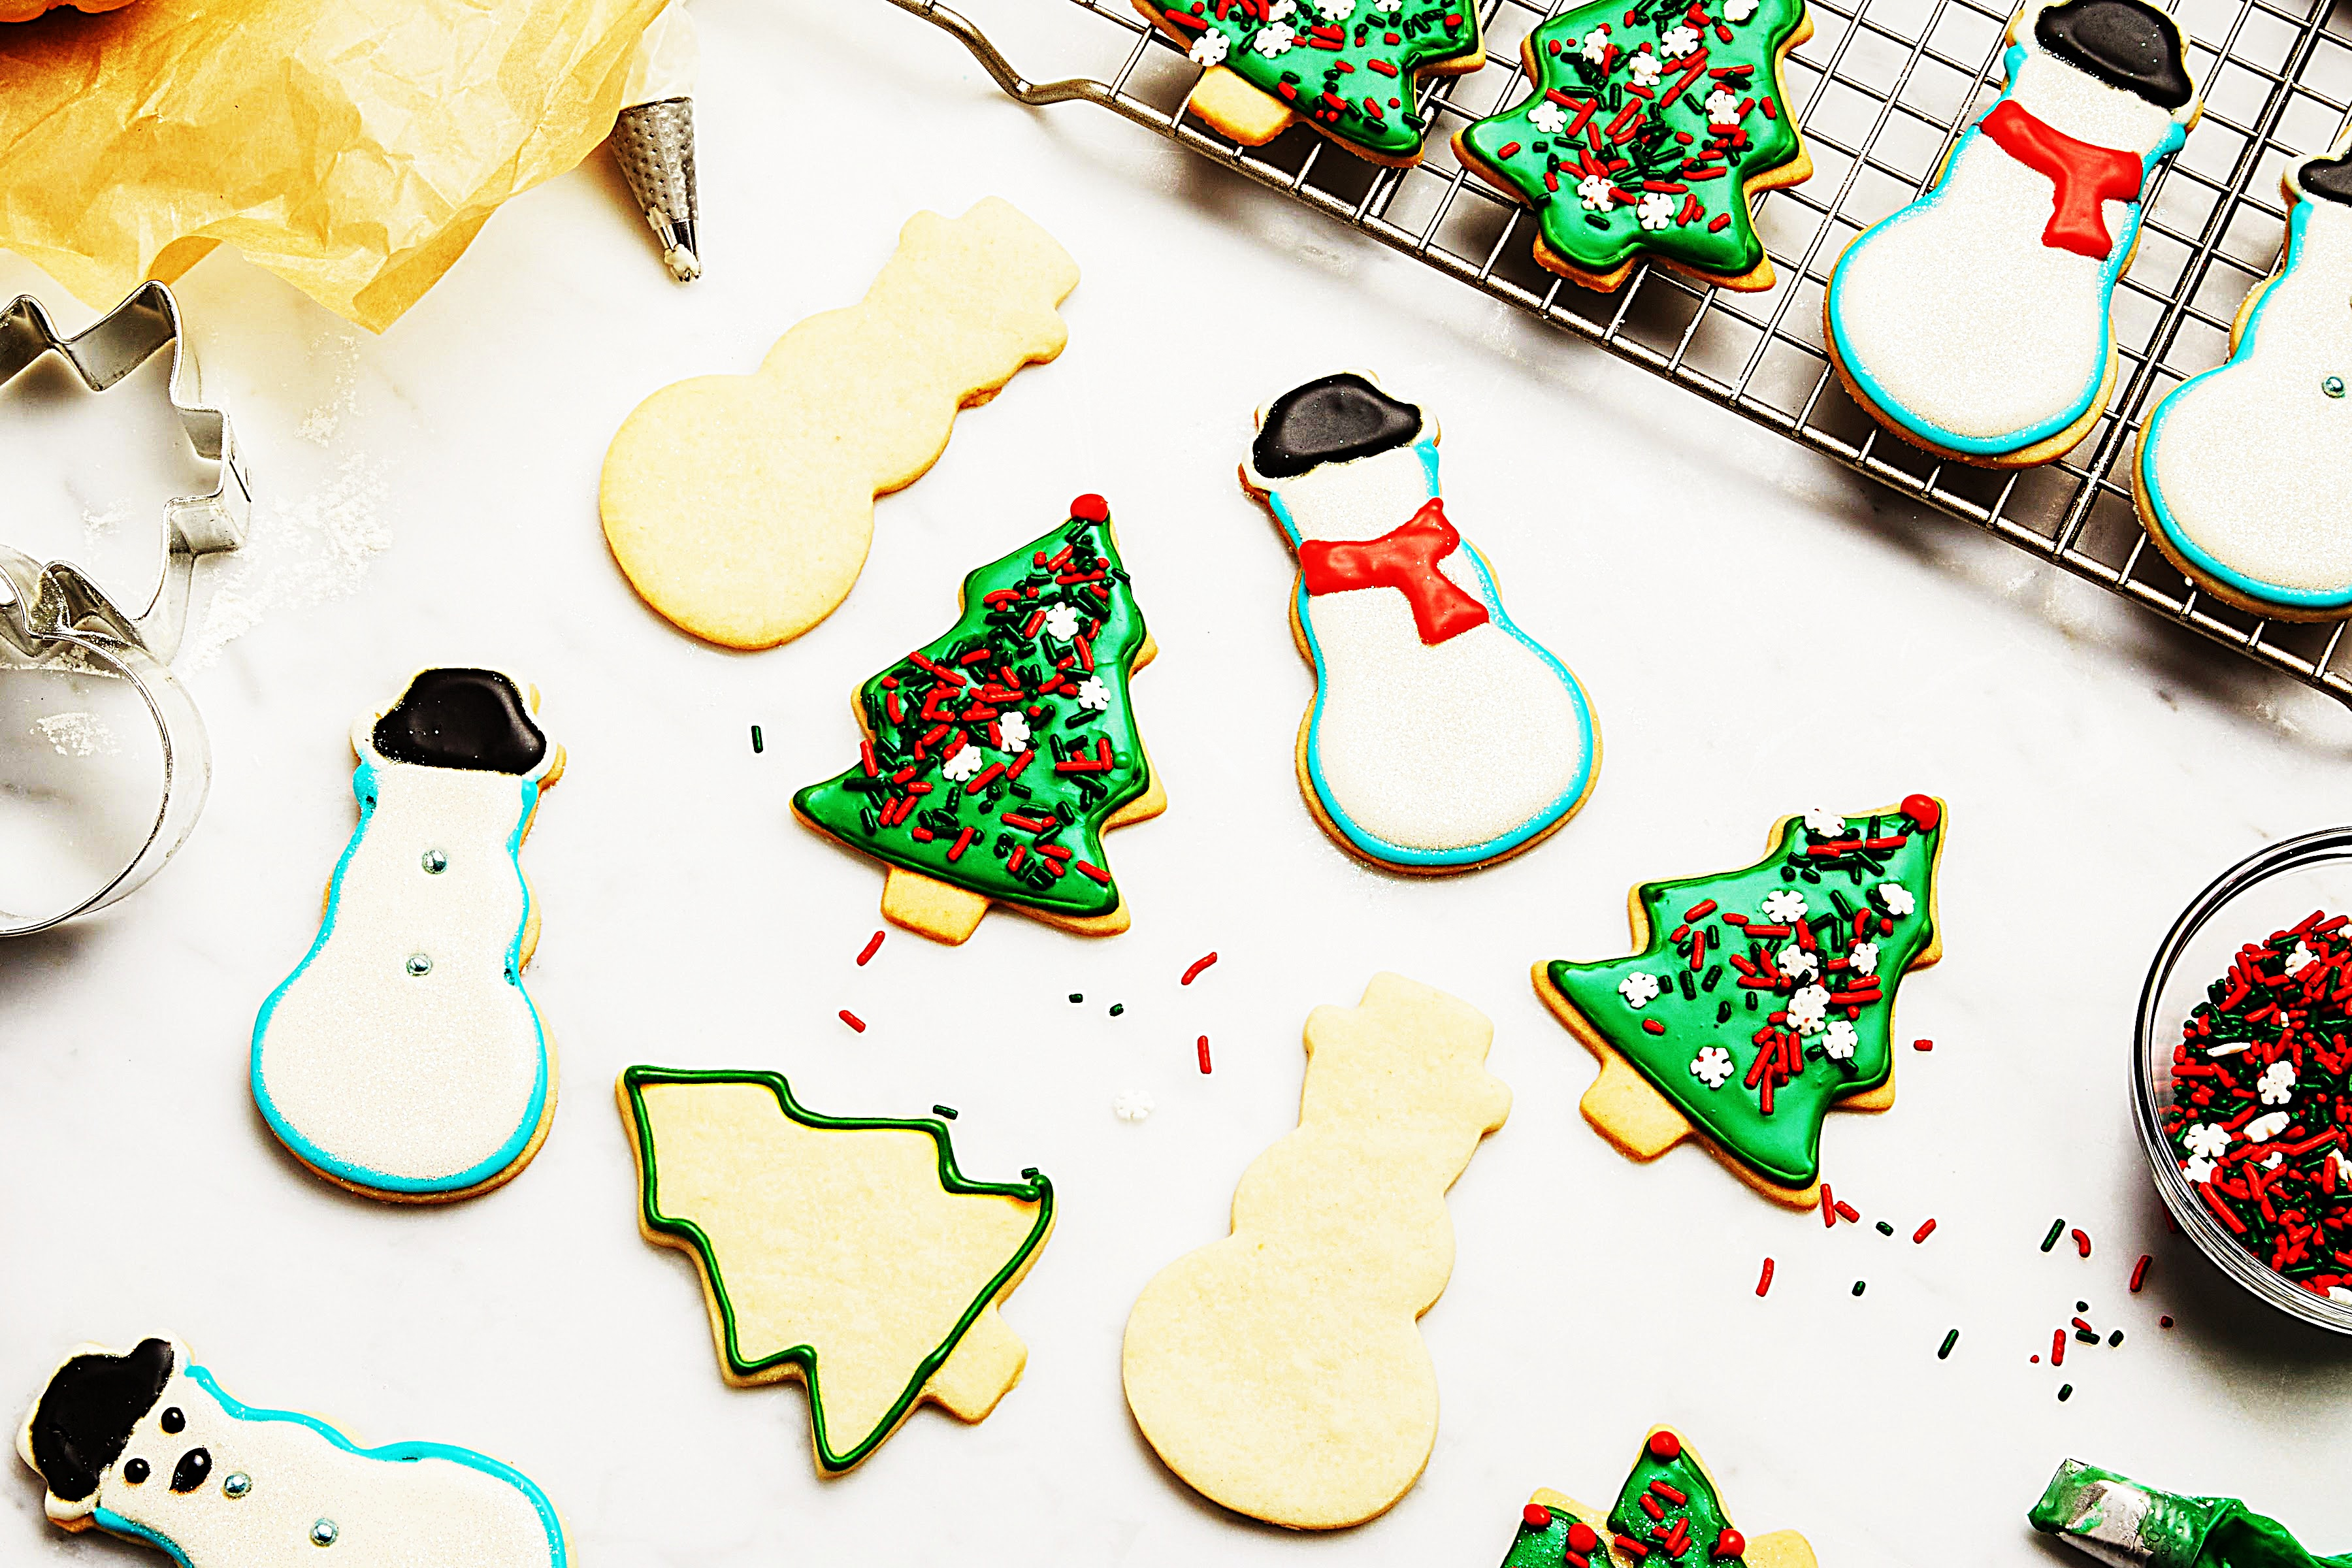 Stupid-Easy Recipe for Christmas Sugar Cookies (#1 Top-Rated)